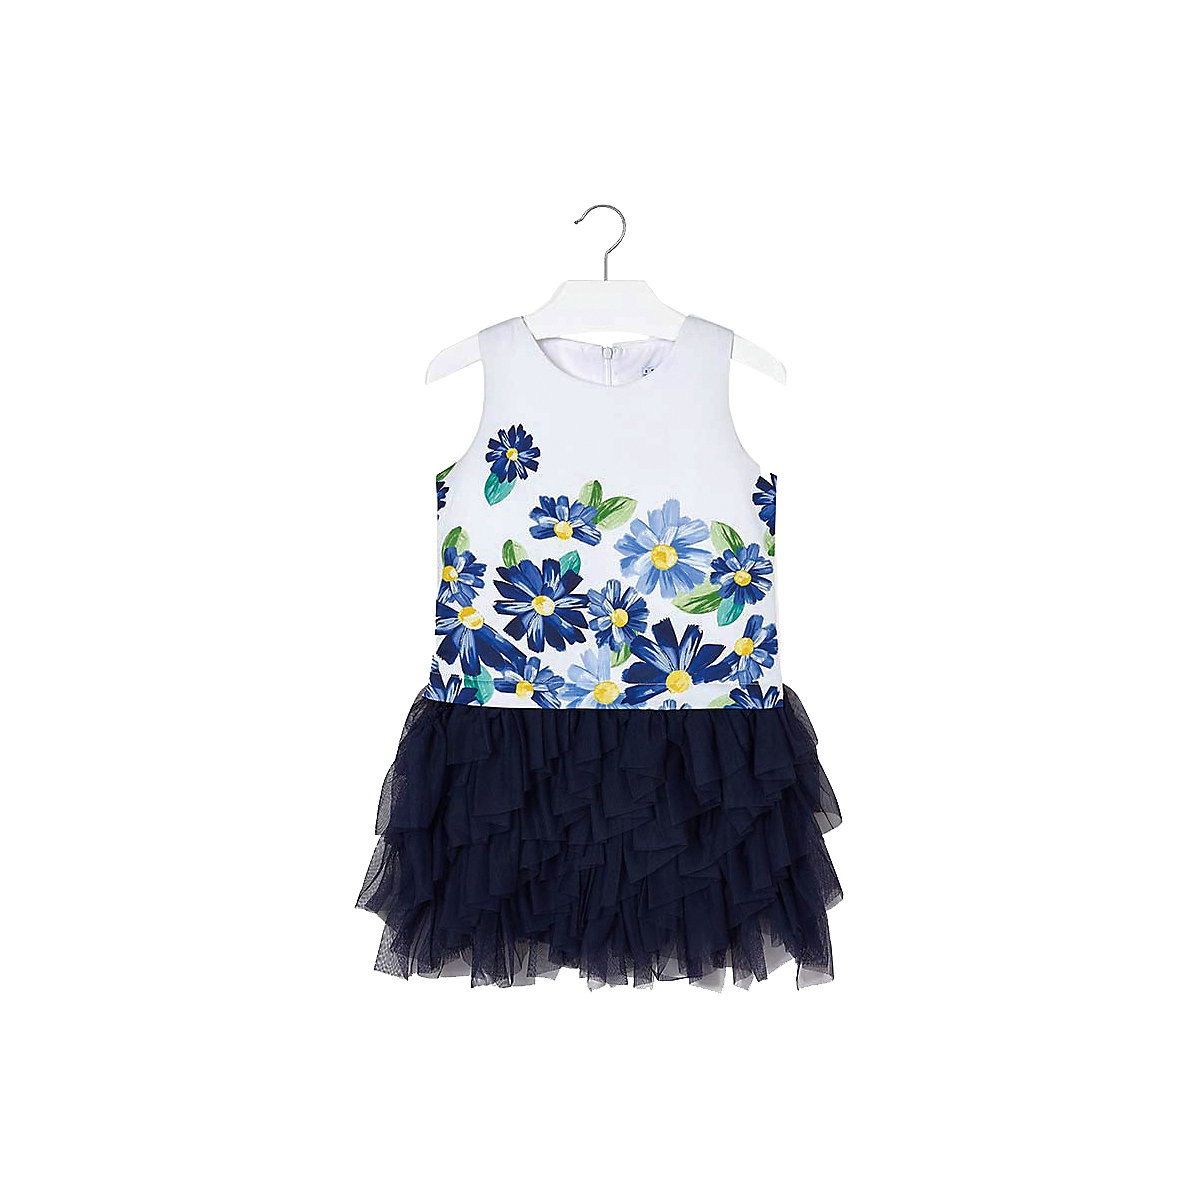 MAYORAL Dresses 10681335 Girl Children Party fitted pleated skirt Blue Cotton Preppy Style Floral Knee-Length Sleeveless Sleeve navy velvet mini pleated skirt